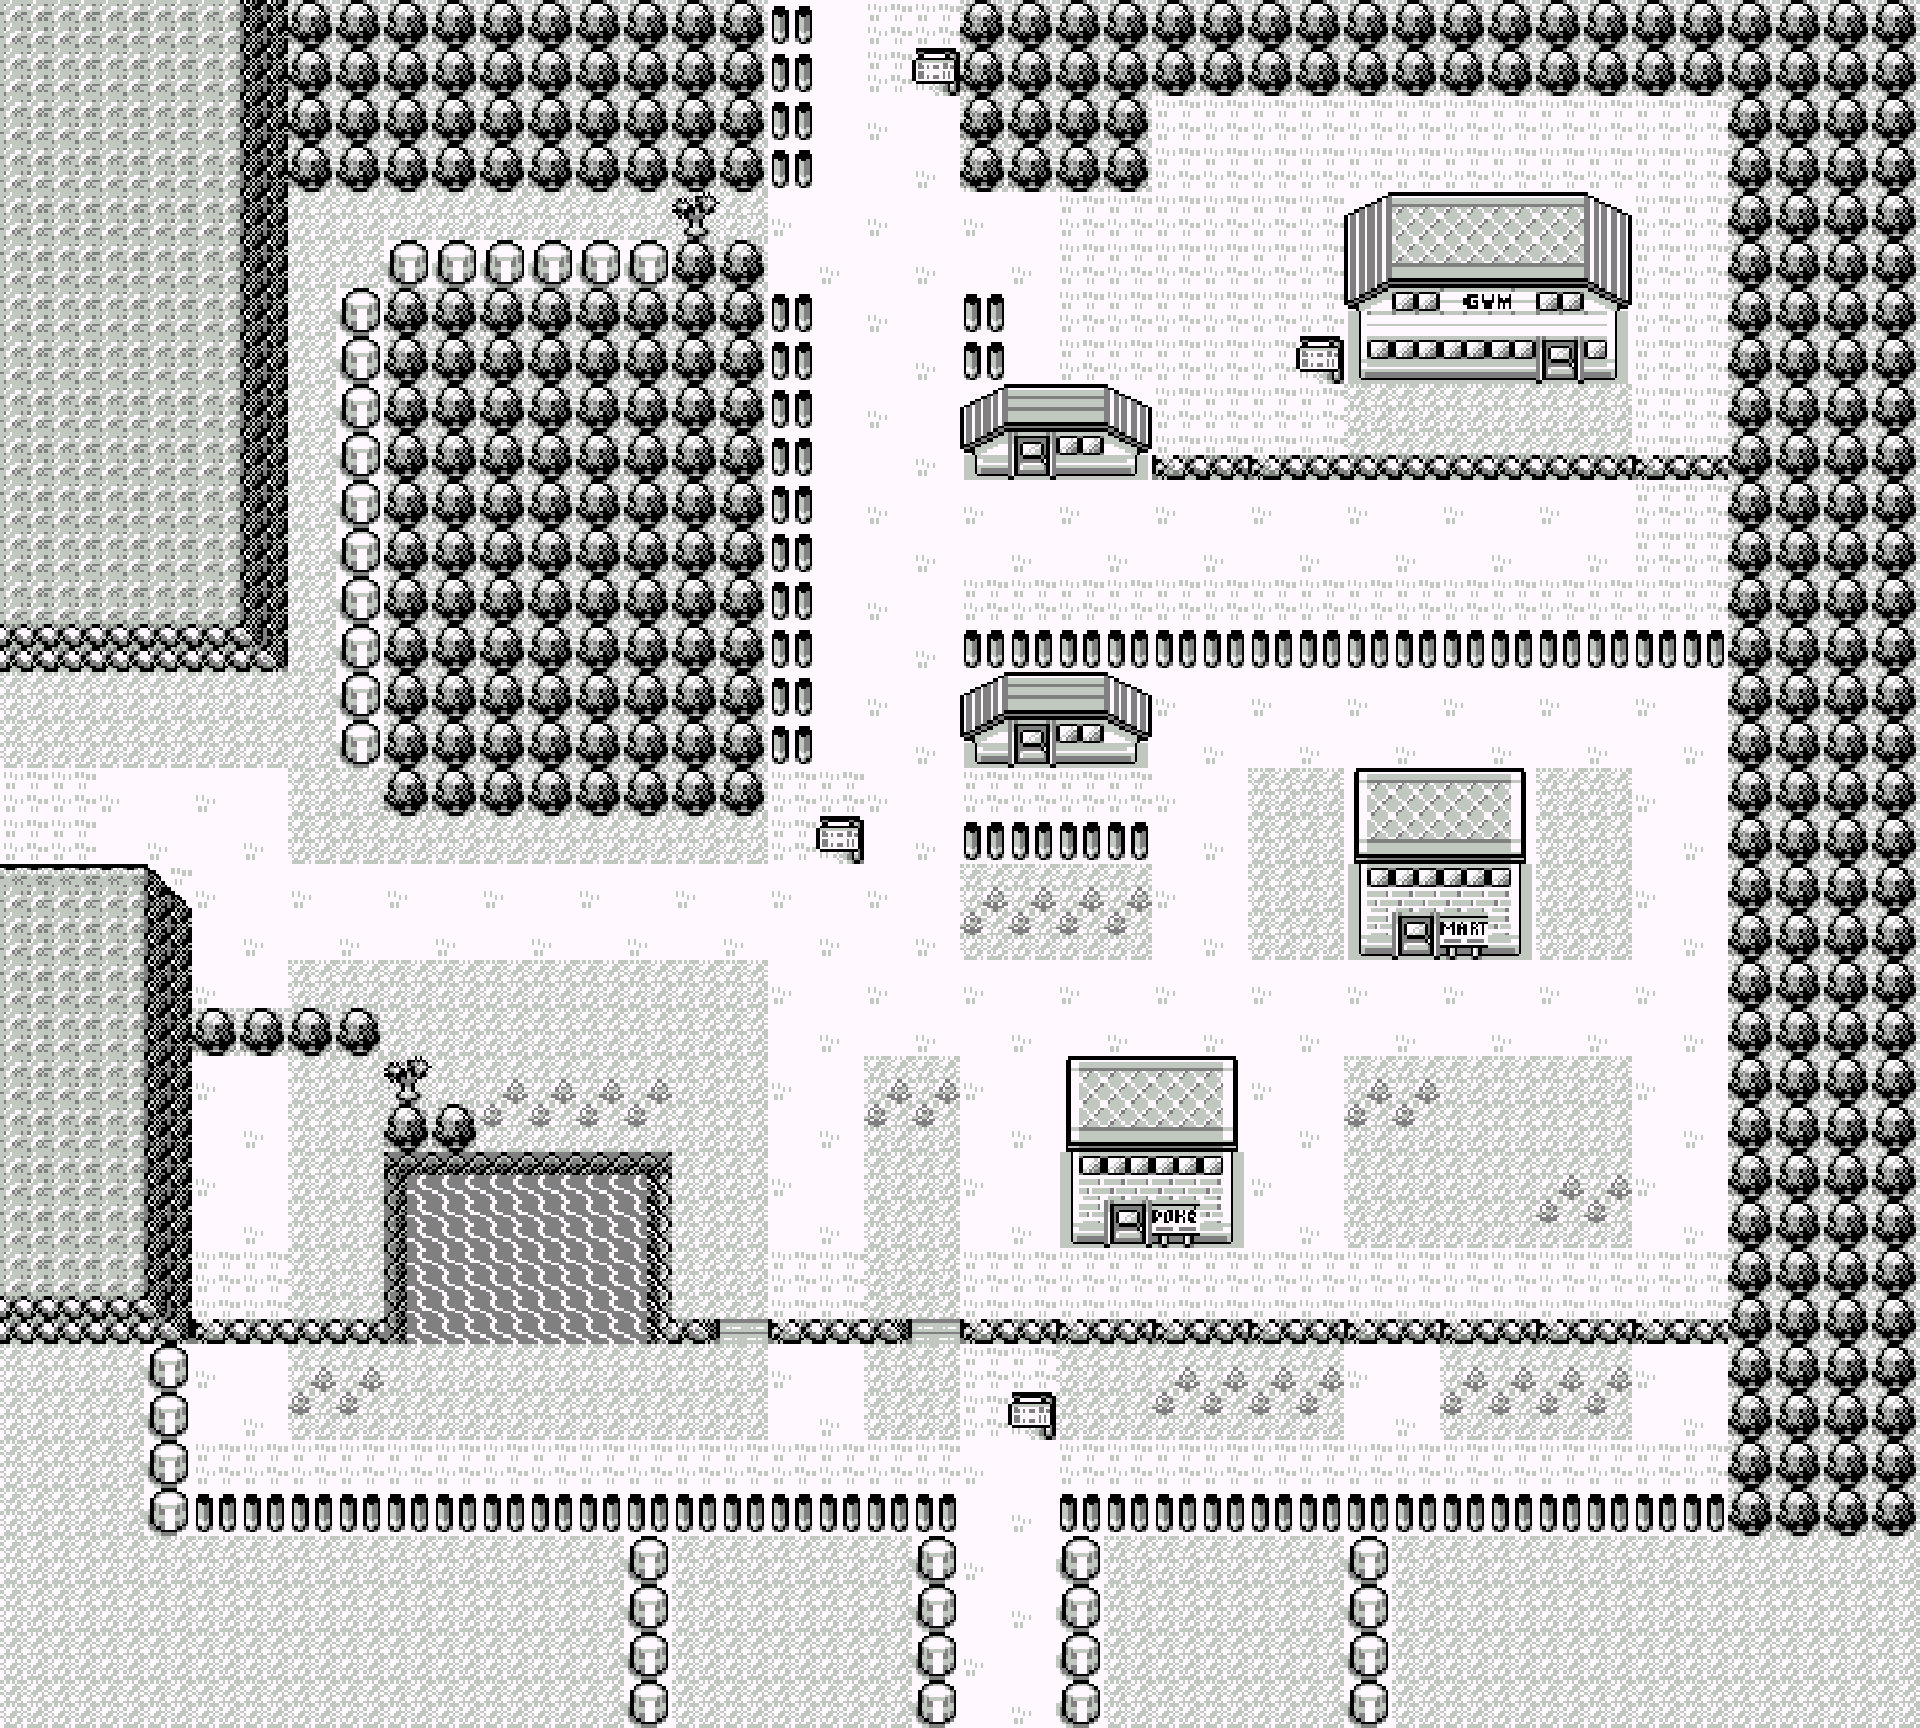 Viridian City as it appeared on the original Game Boy version of Pokémons Red and Blue.